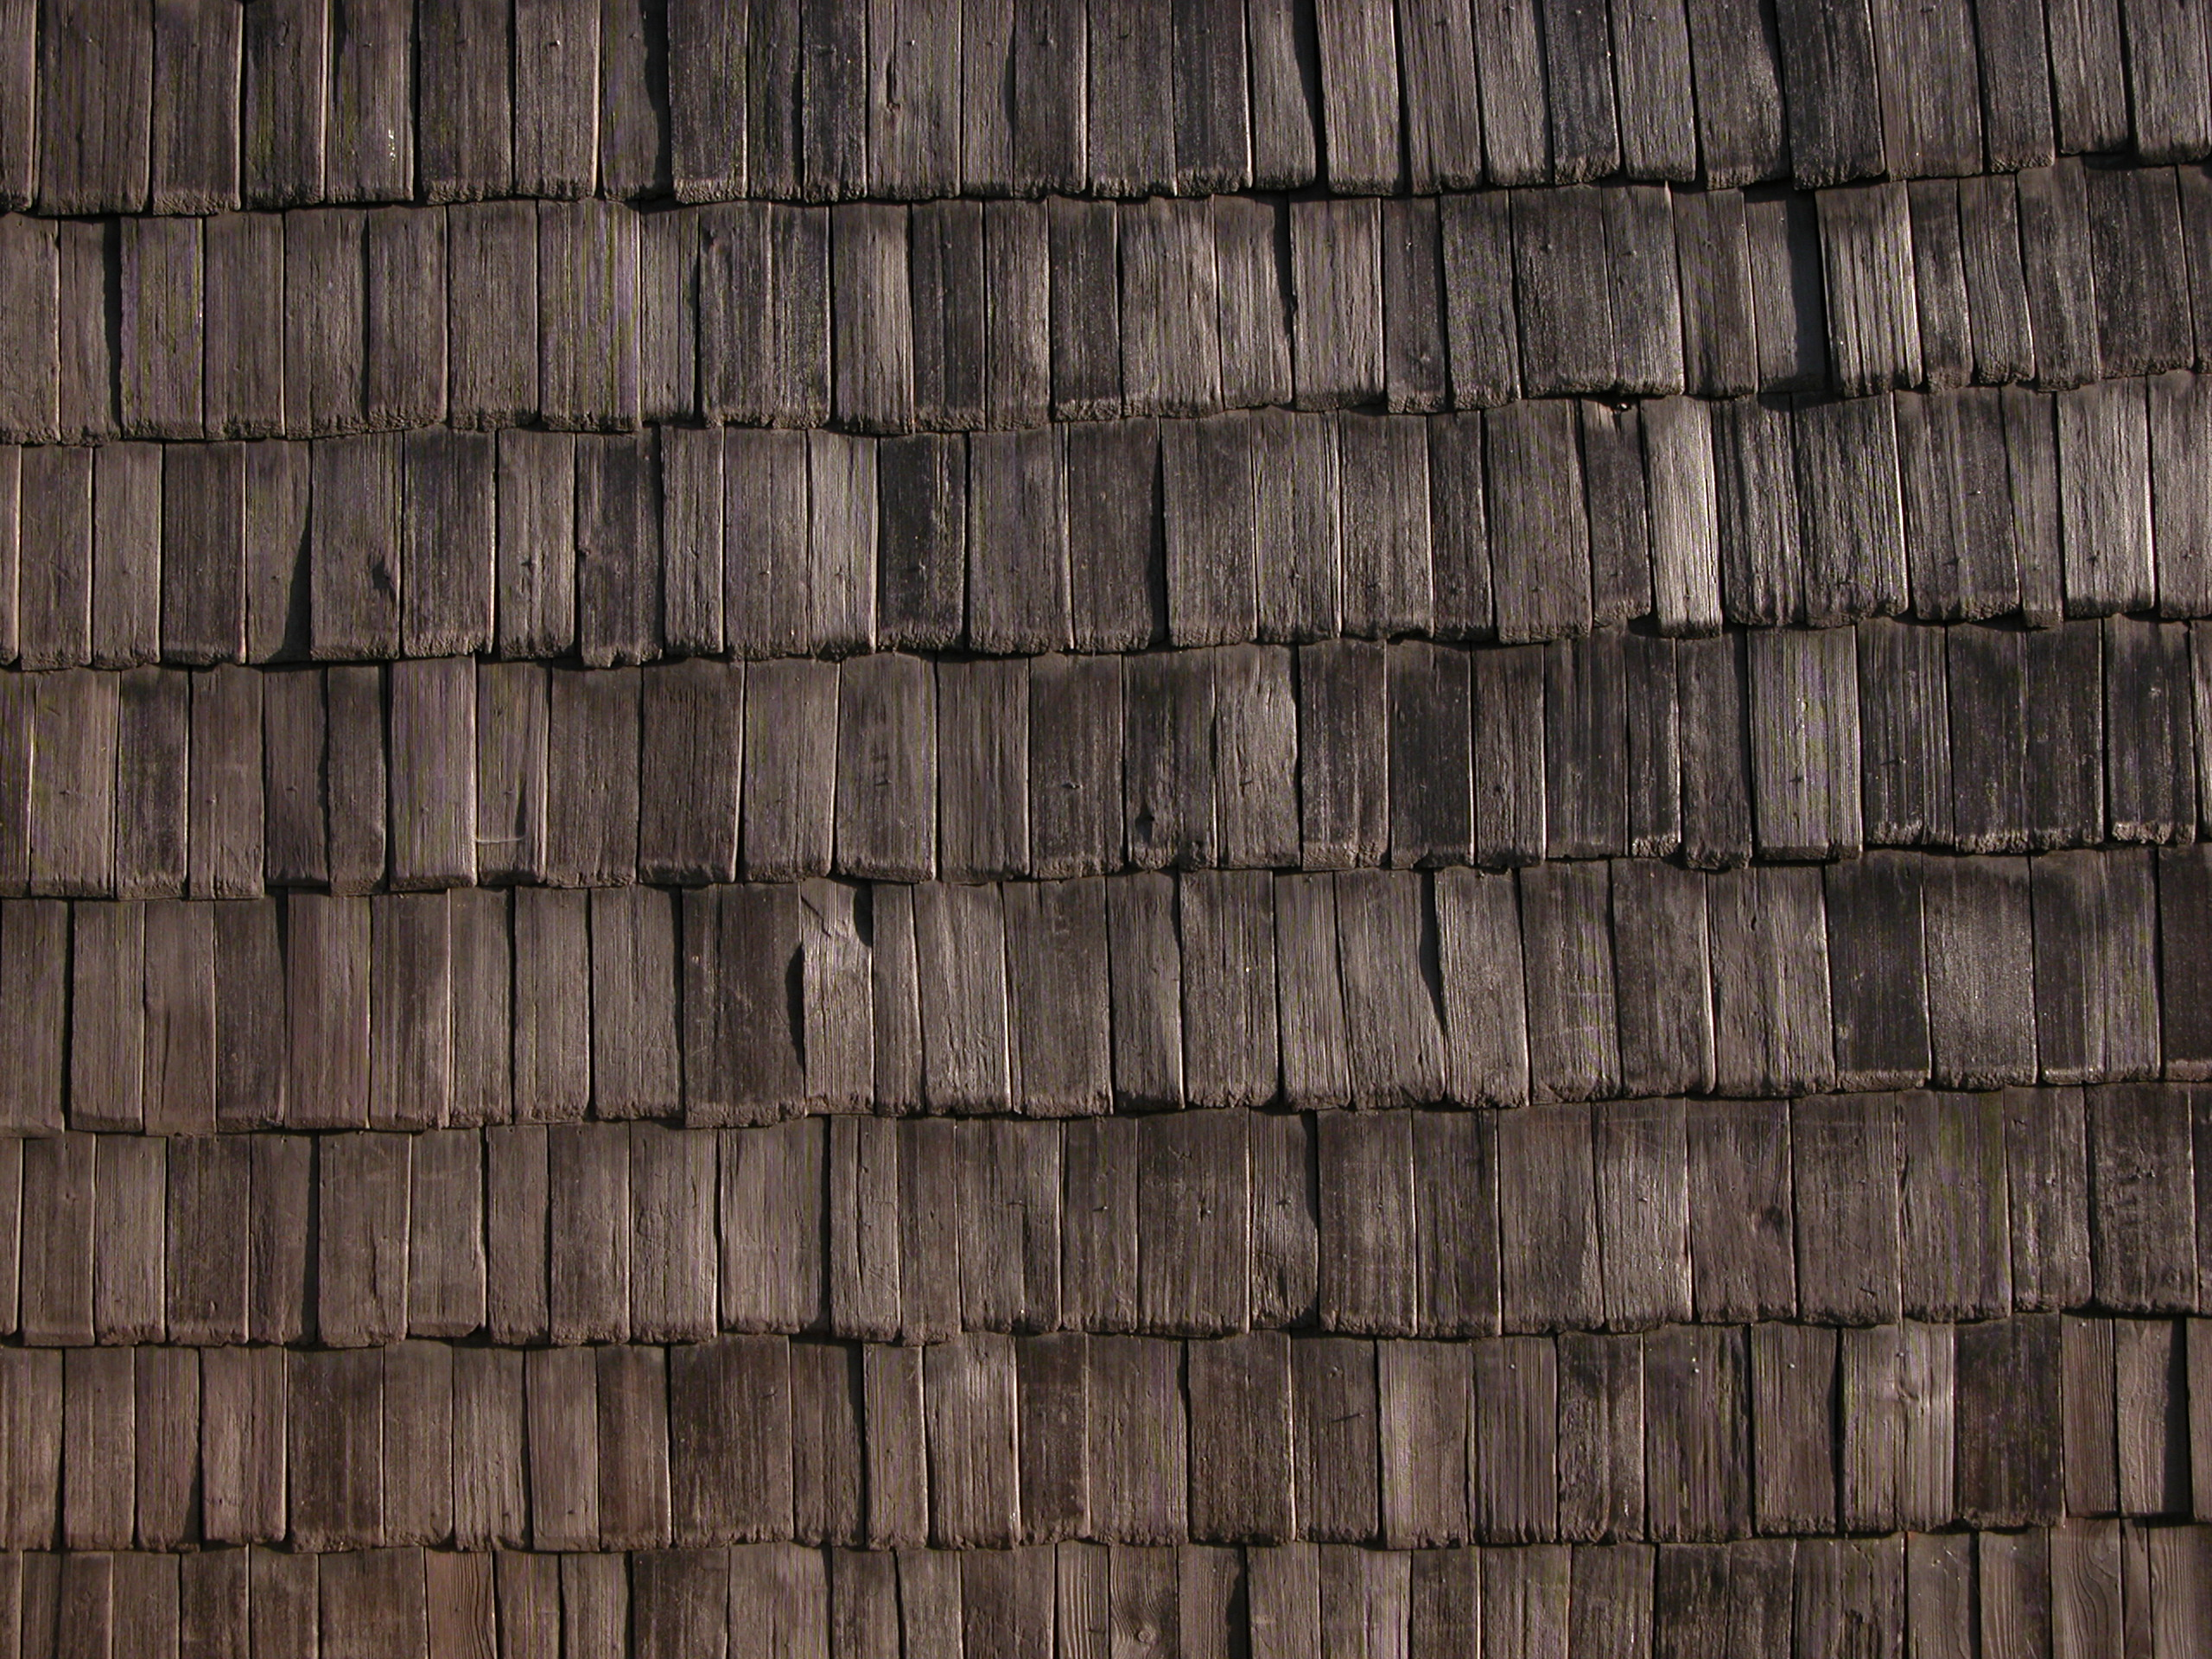 Image After Textures Roof Texture Pattern Wood Wooden